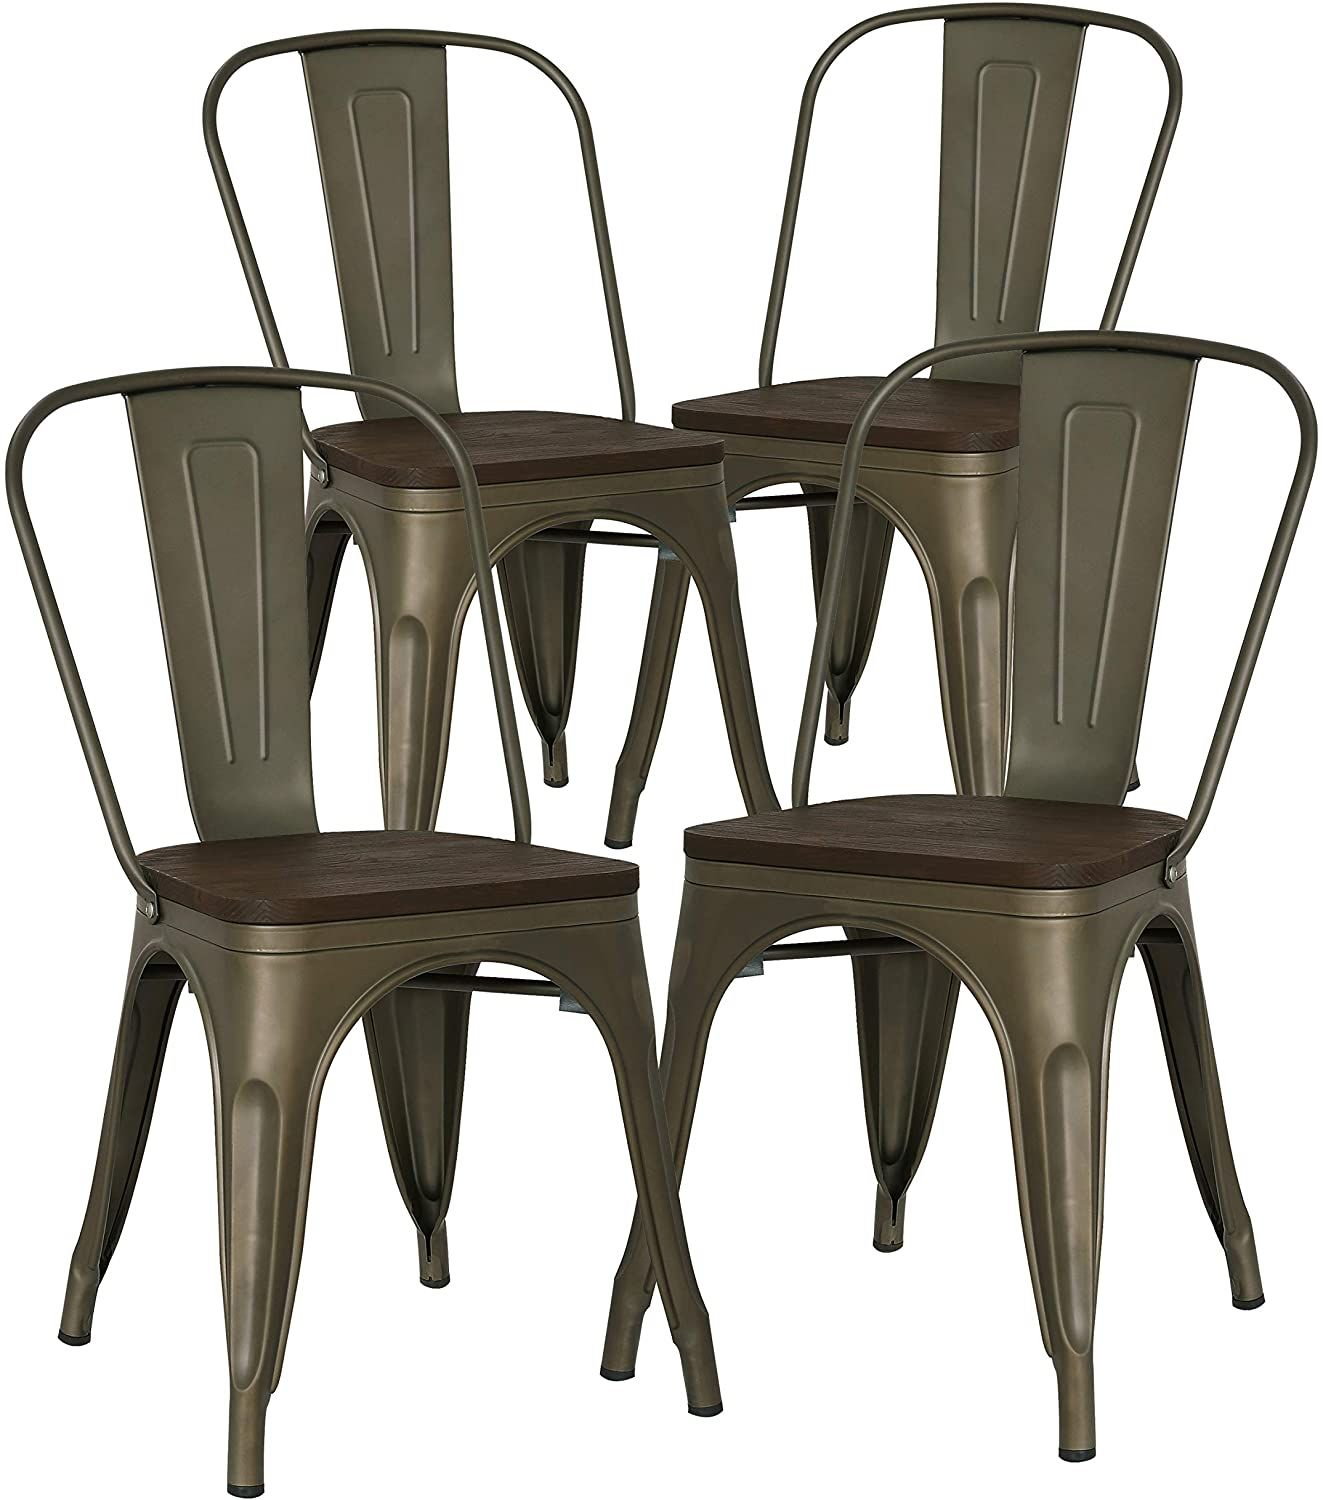 Top 10 Best Dining Room Chairs In 2020 Reviews In 2020 Metal Side Chair Metal Dining Chairs Chair